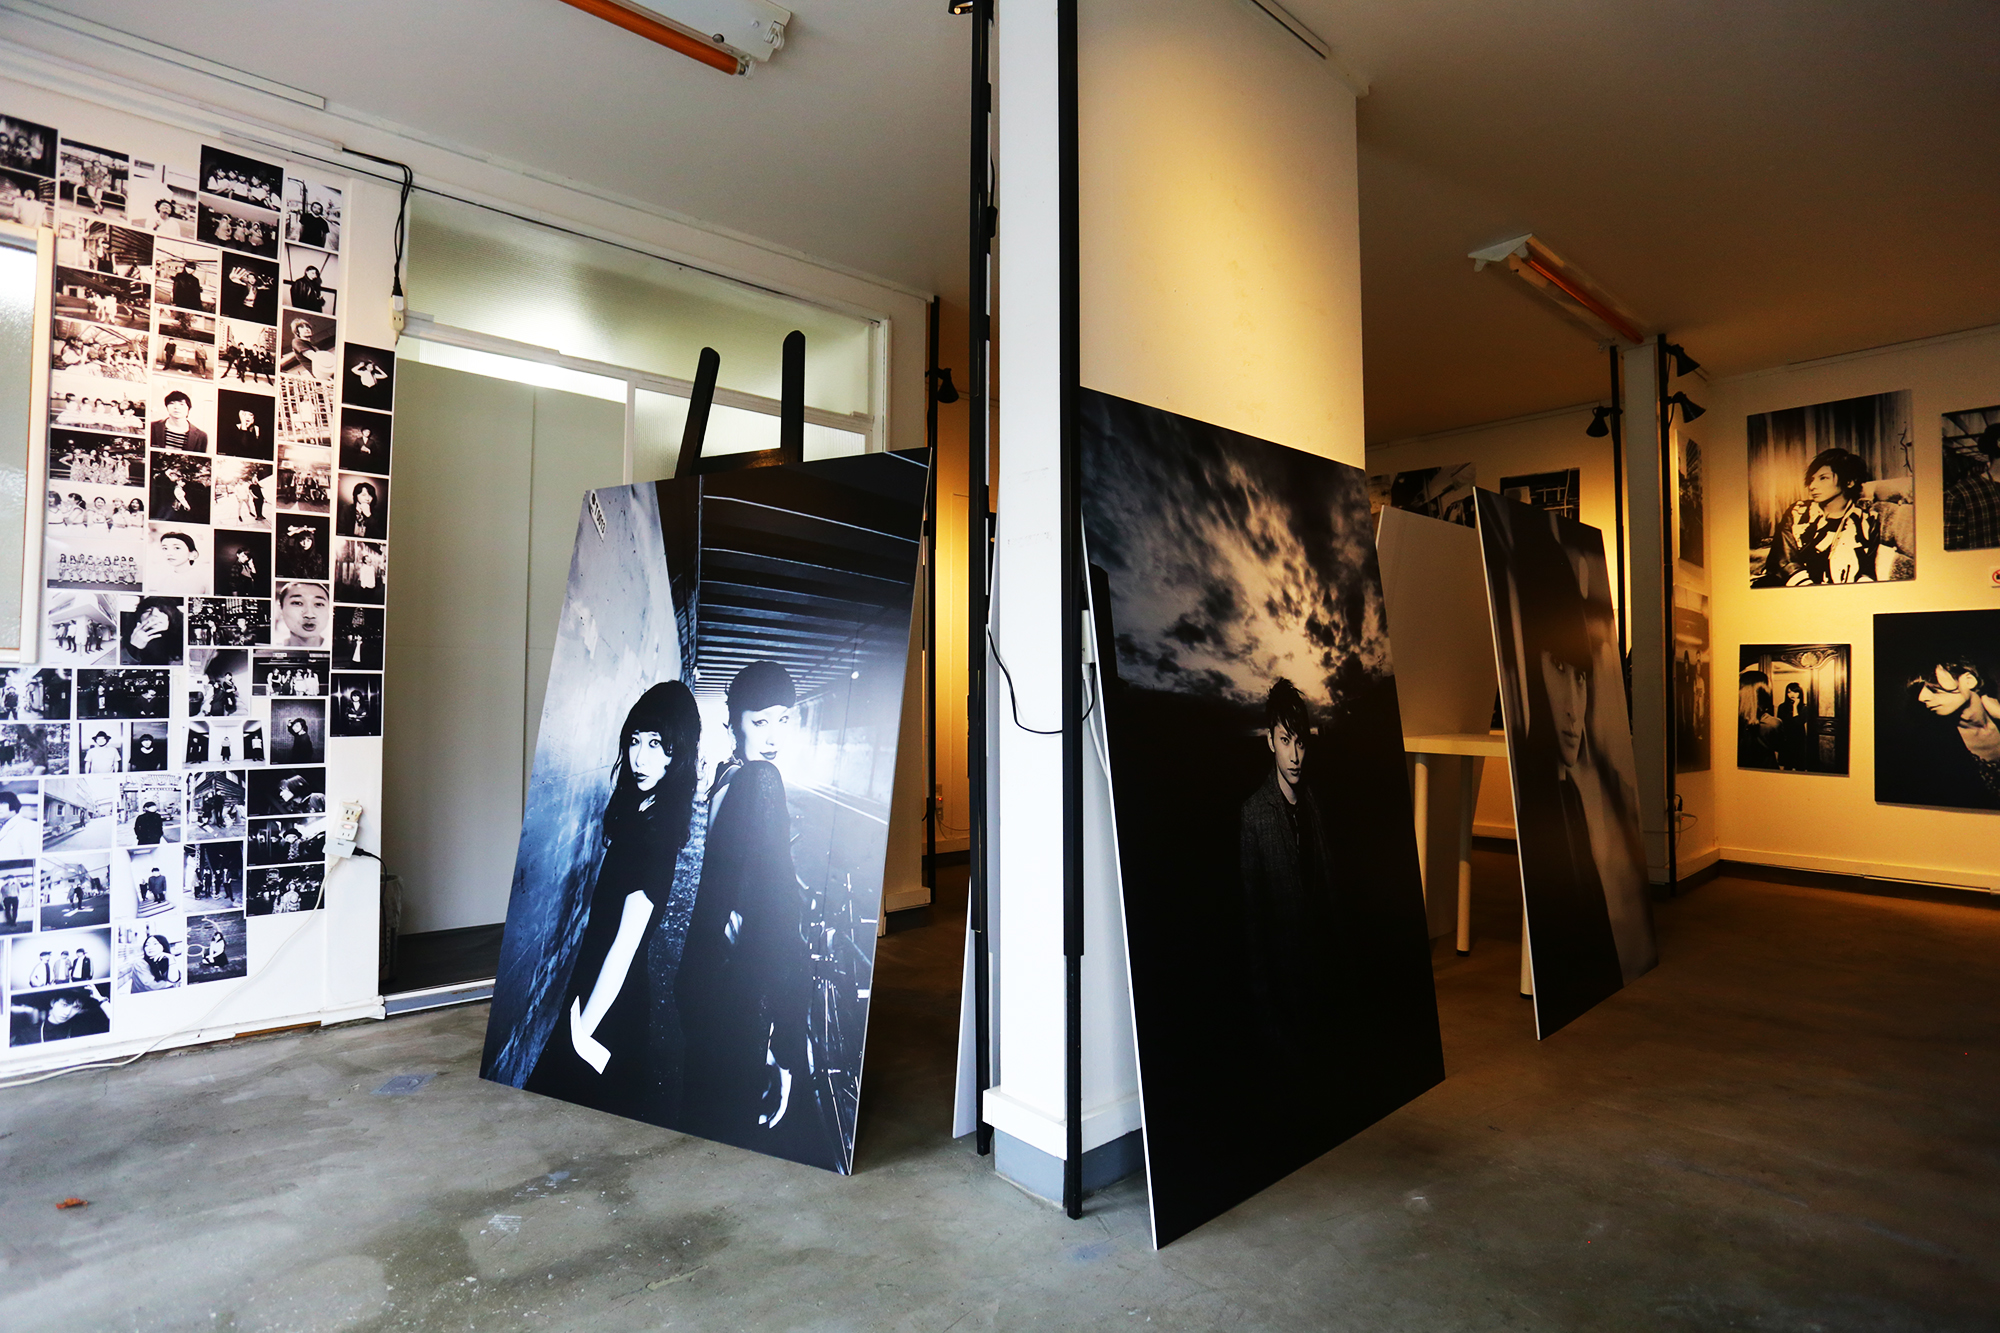 【仙台】GOOD ROCKS! 10th Anniversary PHOTO EXHIBITION PHOTOGRAPHED BY HIROSUKE FUKUMOTO